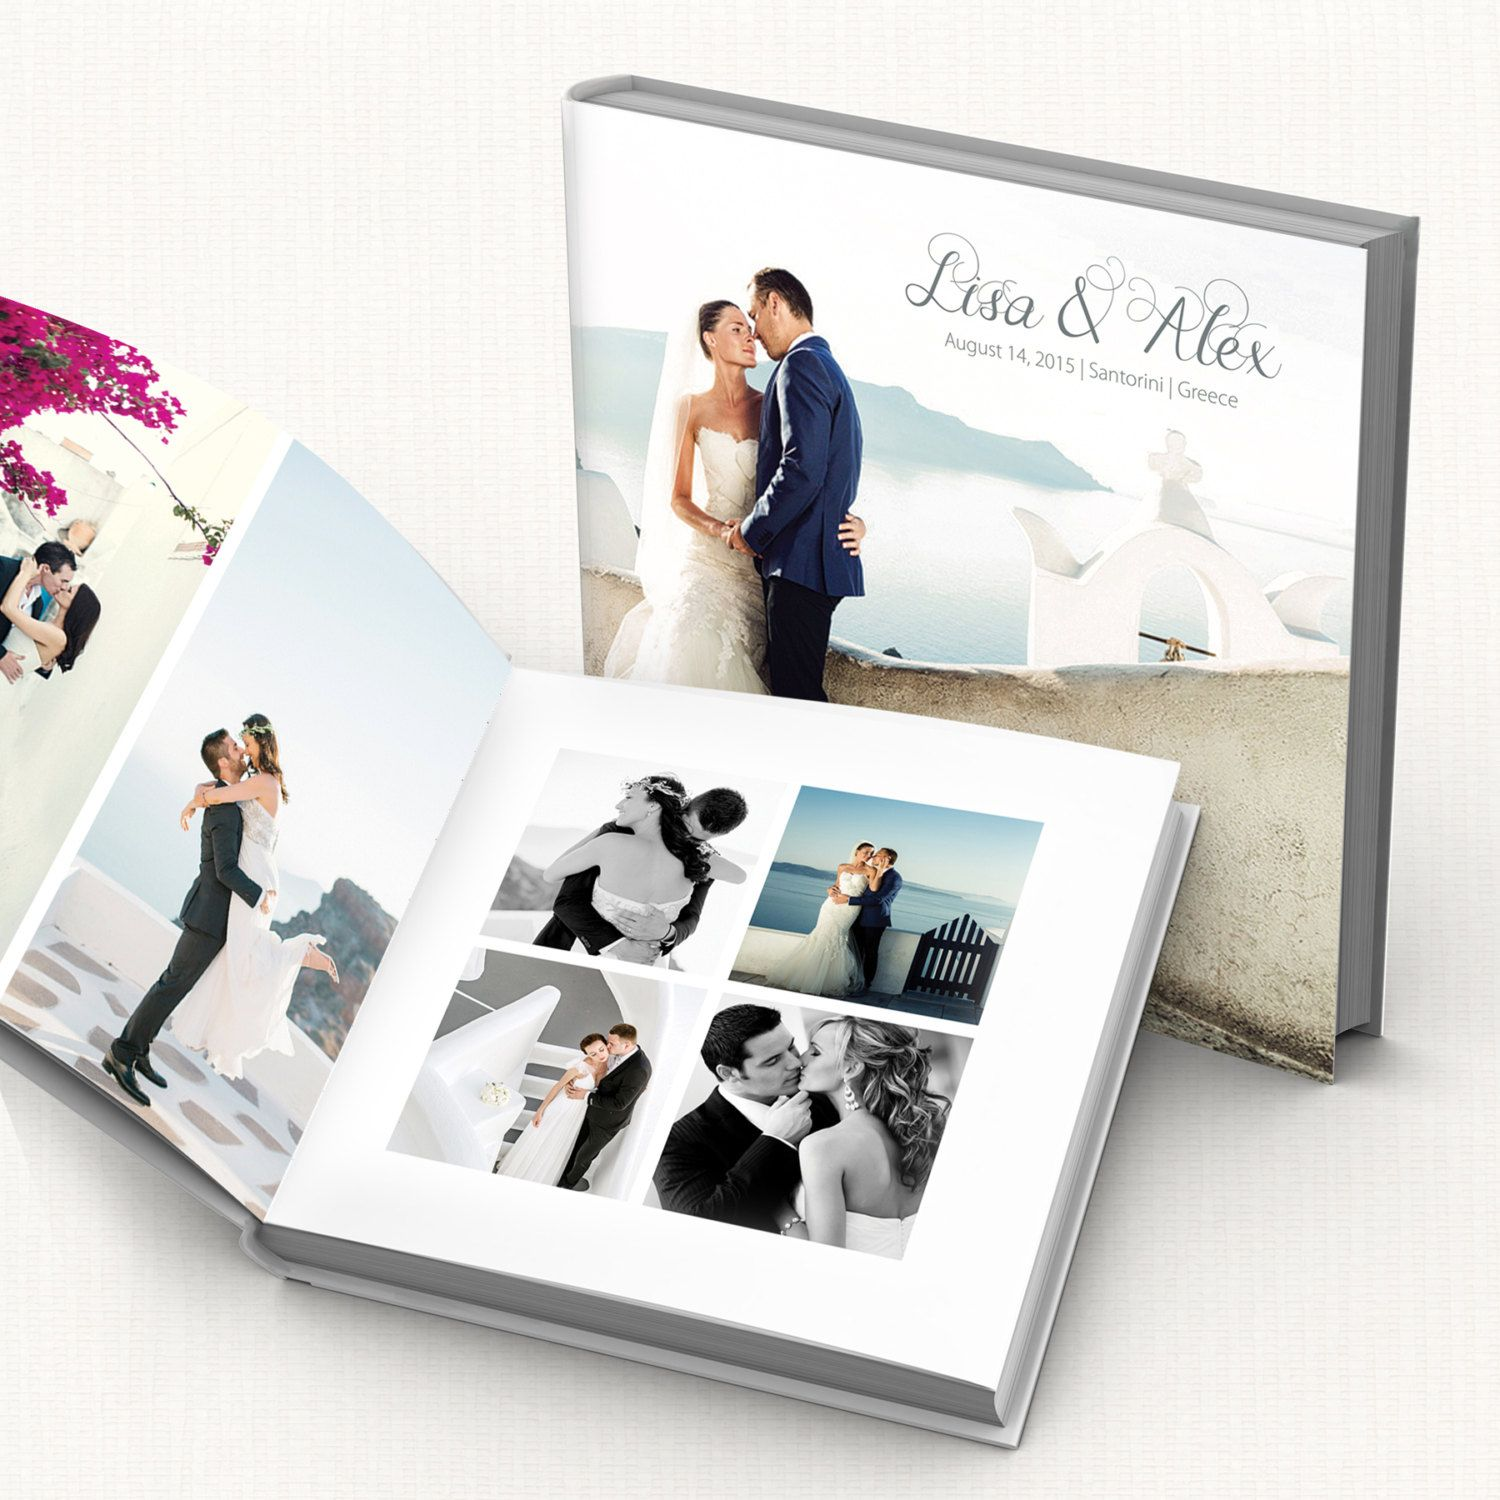 Wedding Album PSD Template. Customizable modern wedding photo book ...